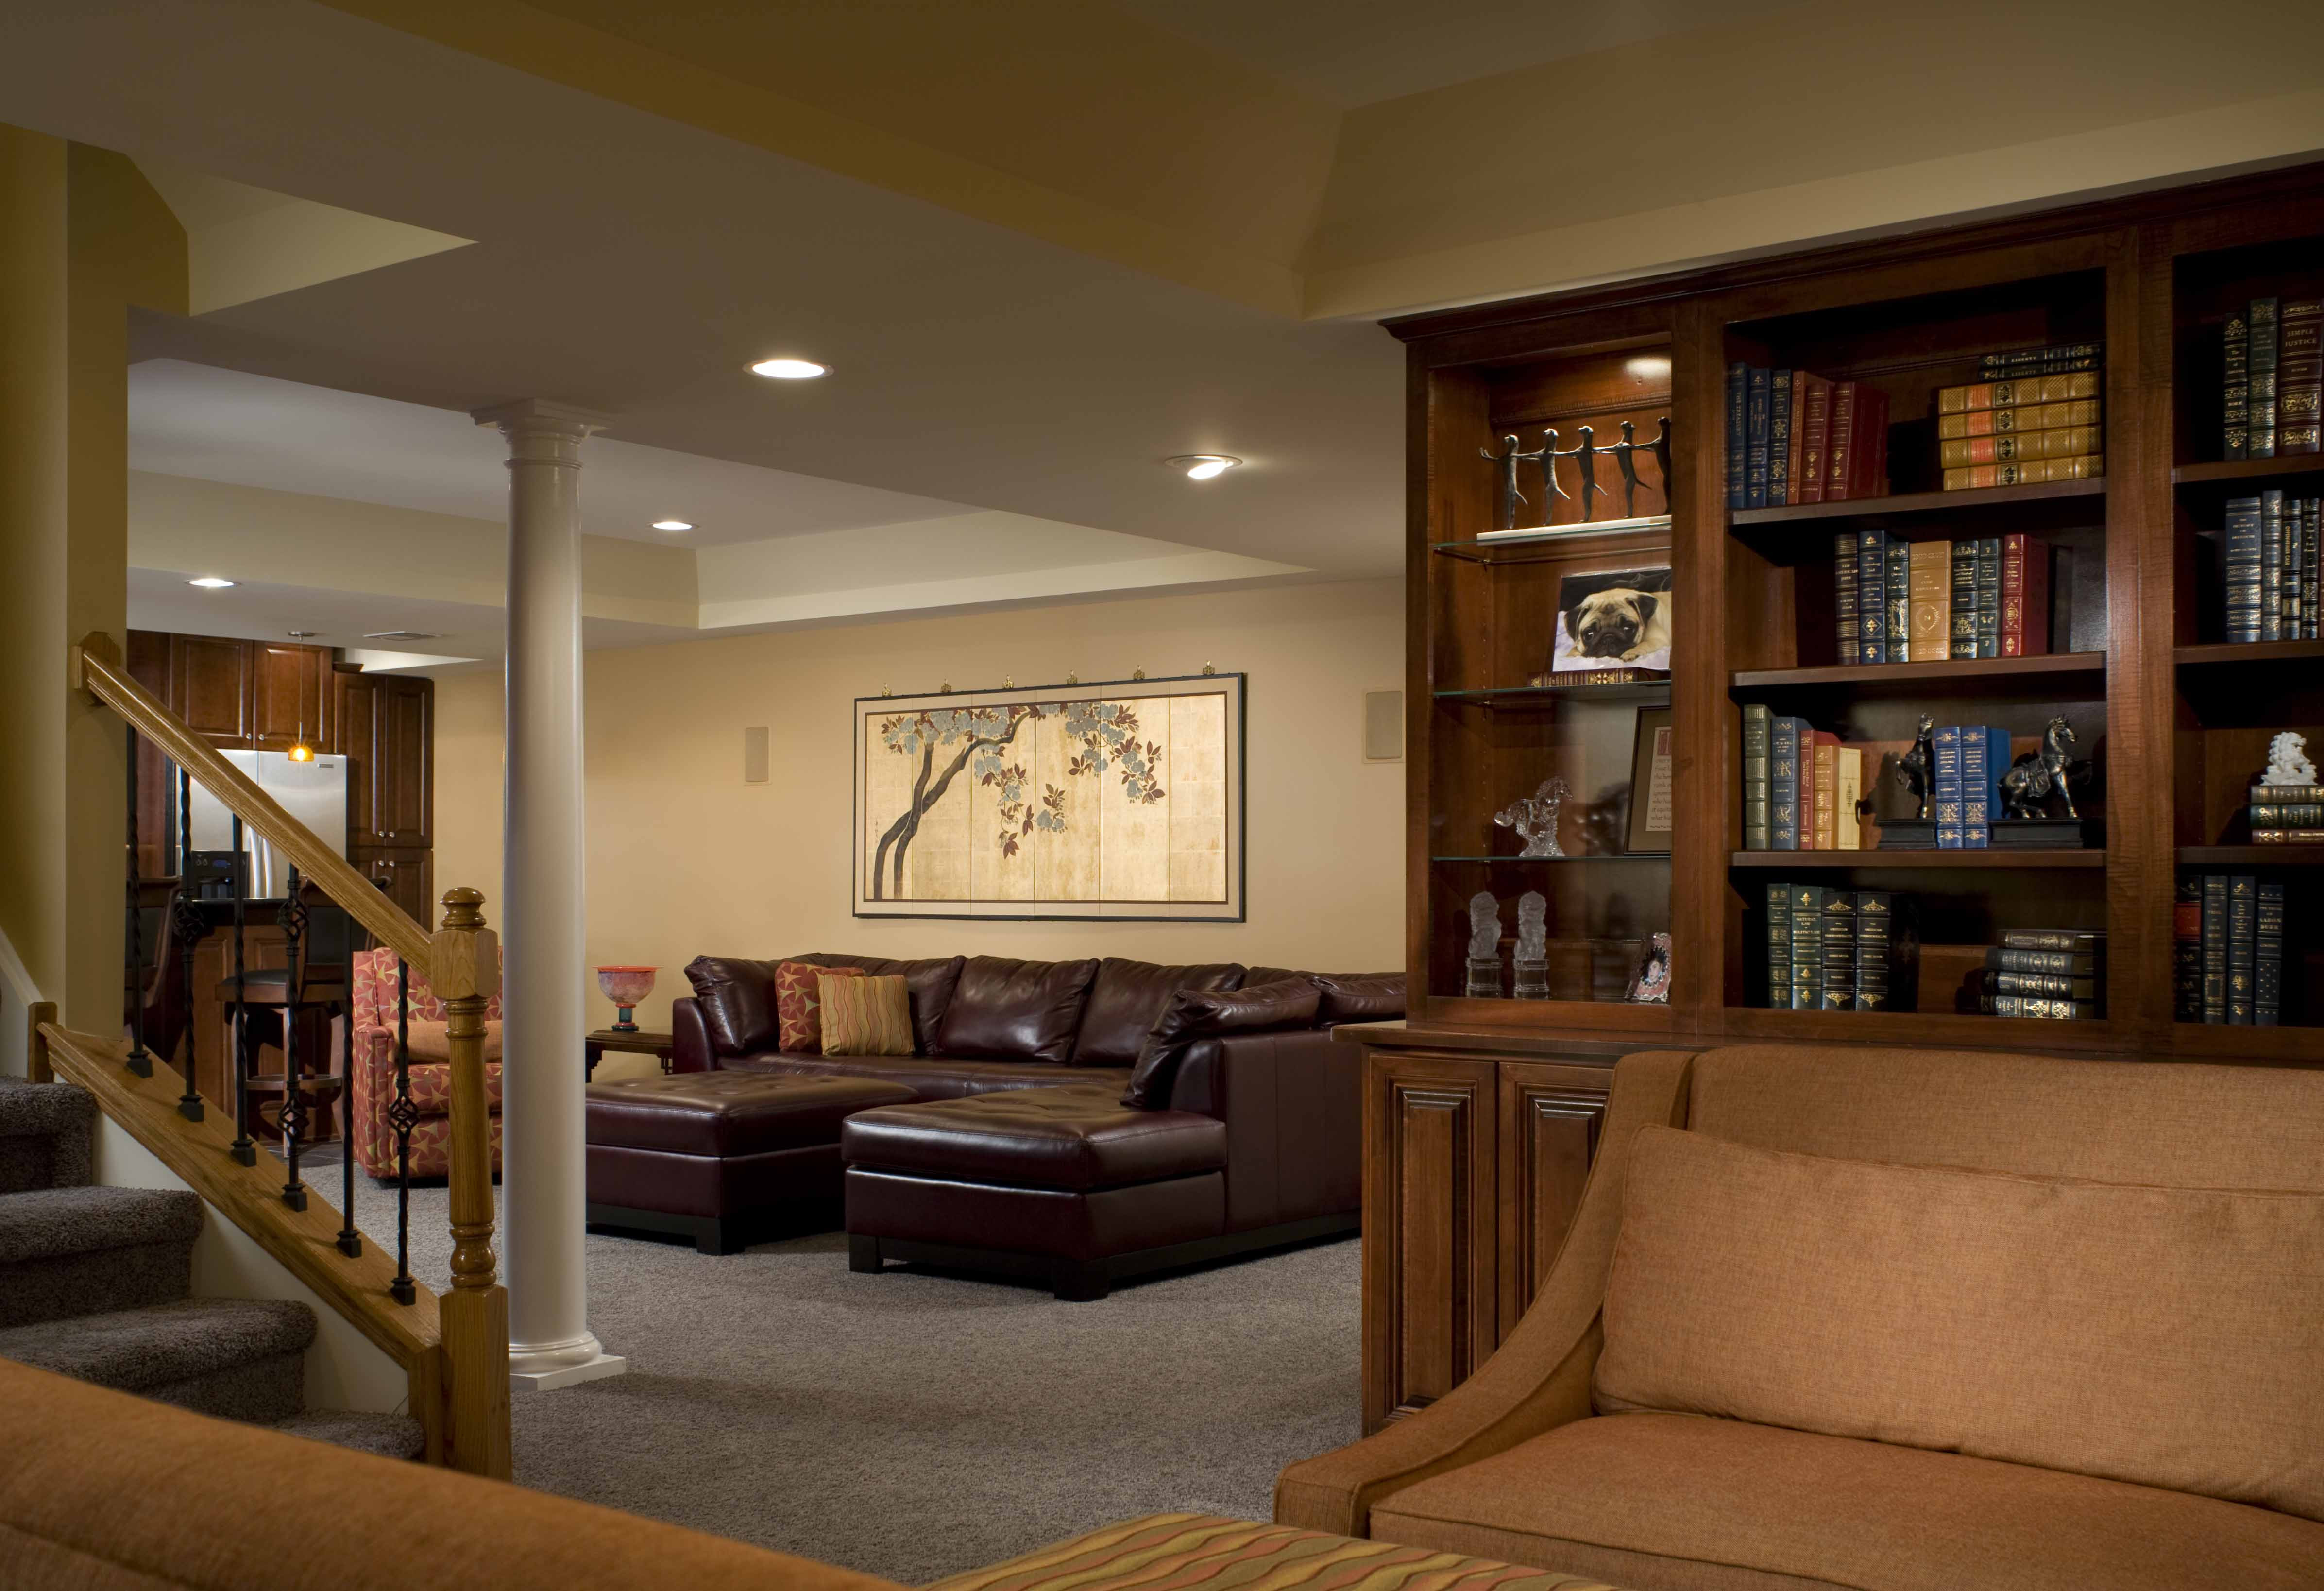 Best ideas about Great Basement Ideas . Save or Pin Cool Basement Ideas For Lounging Area Now.